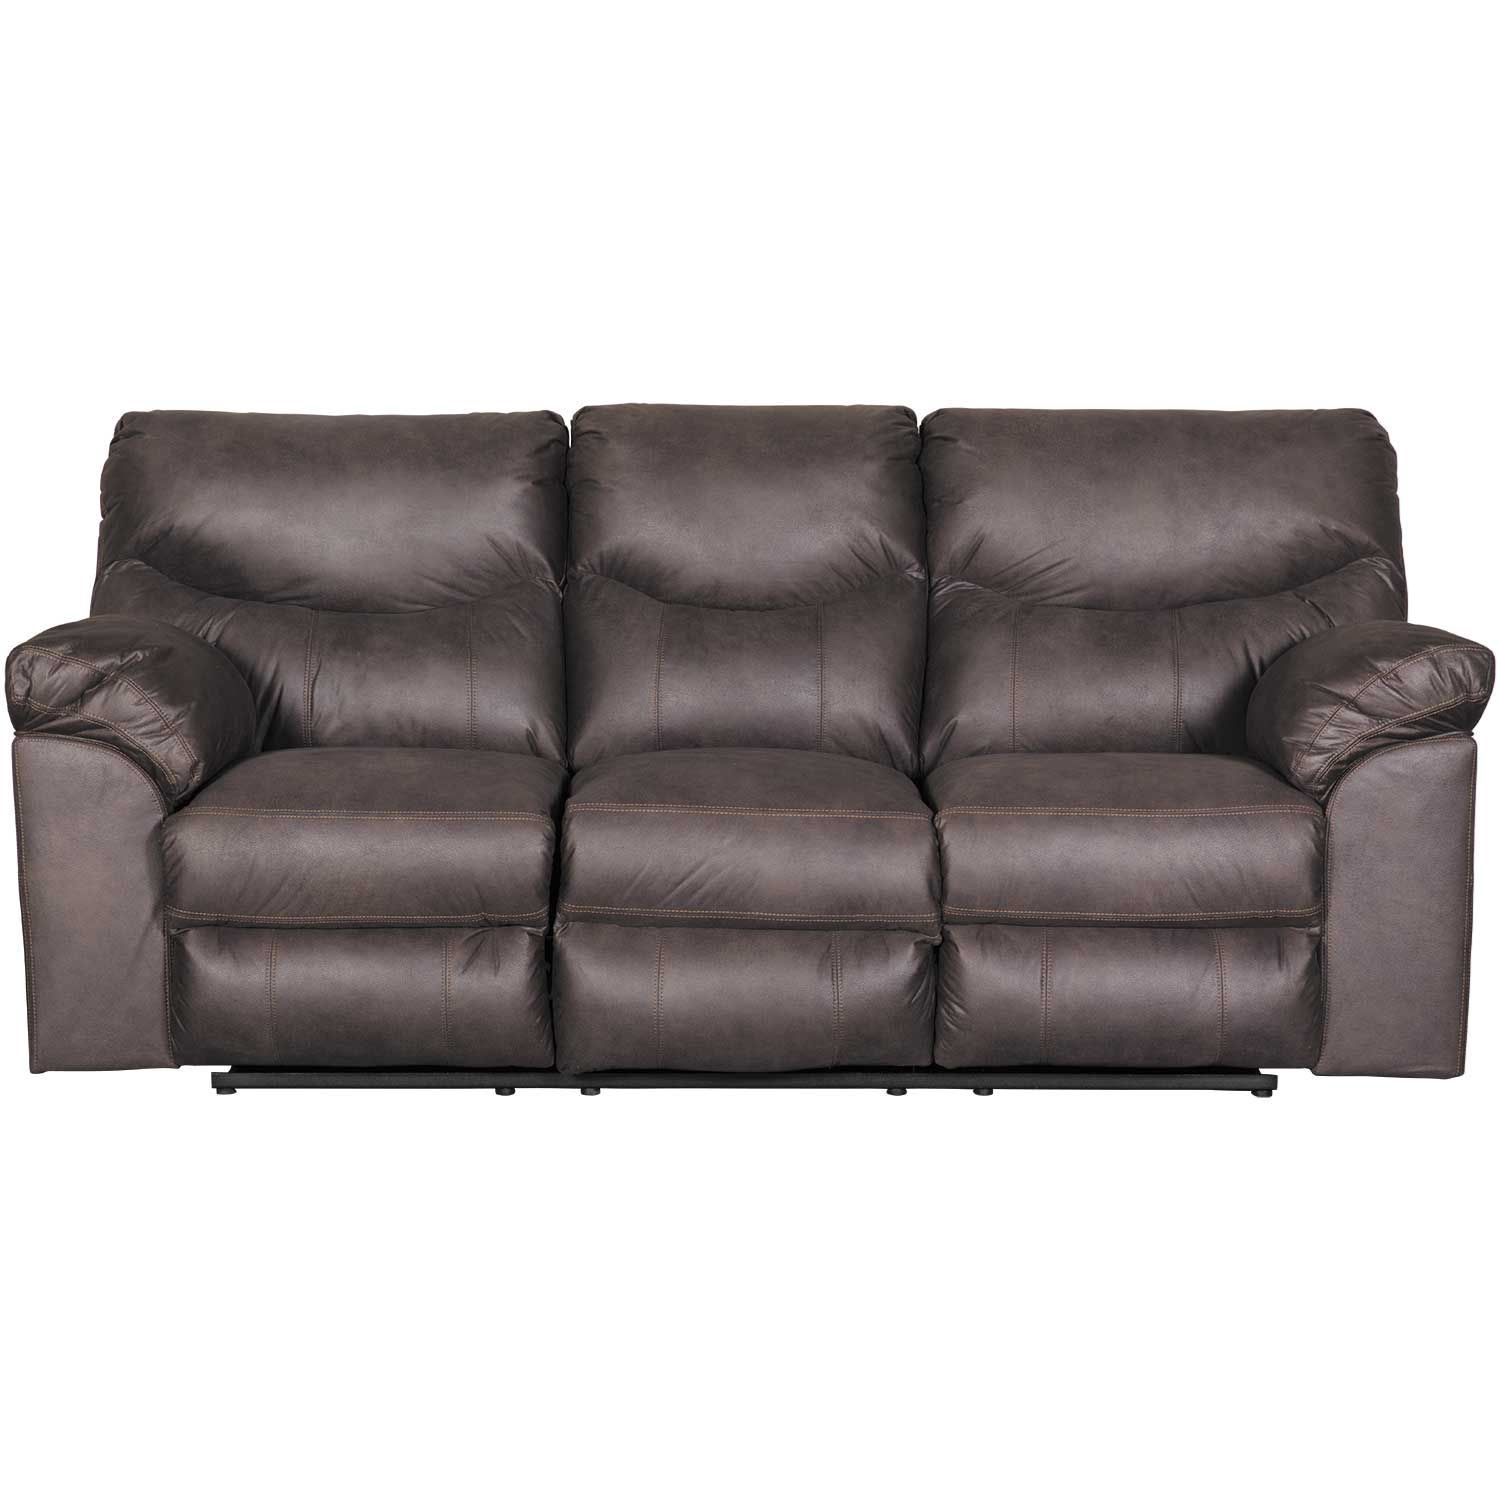 Picture of Boxberg Teak Power Reclining Sofa